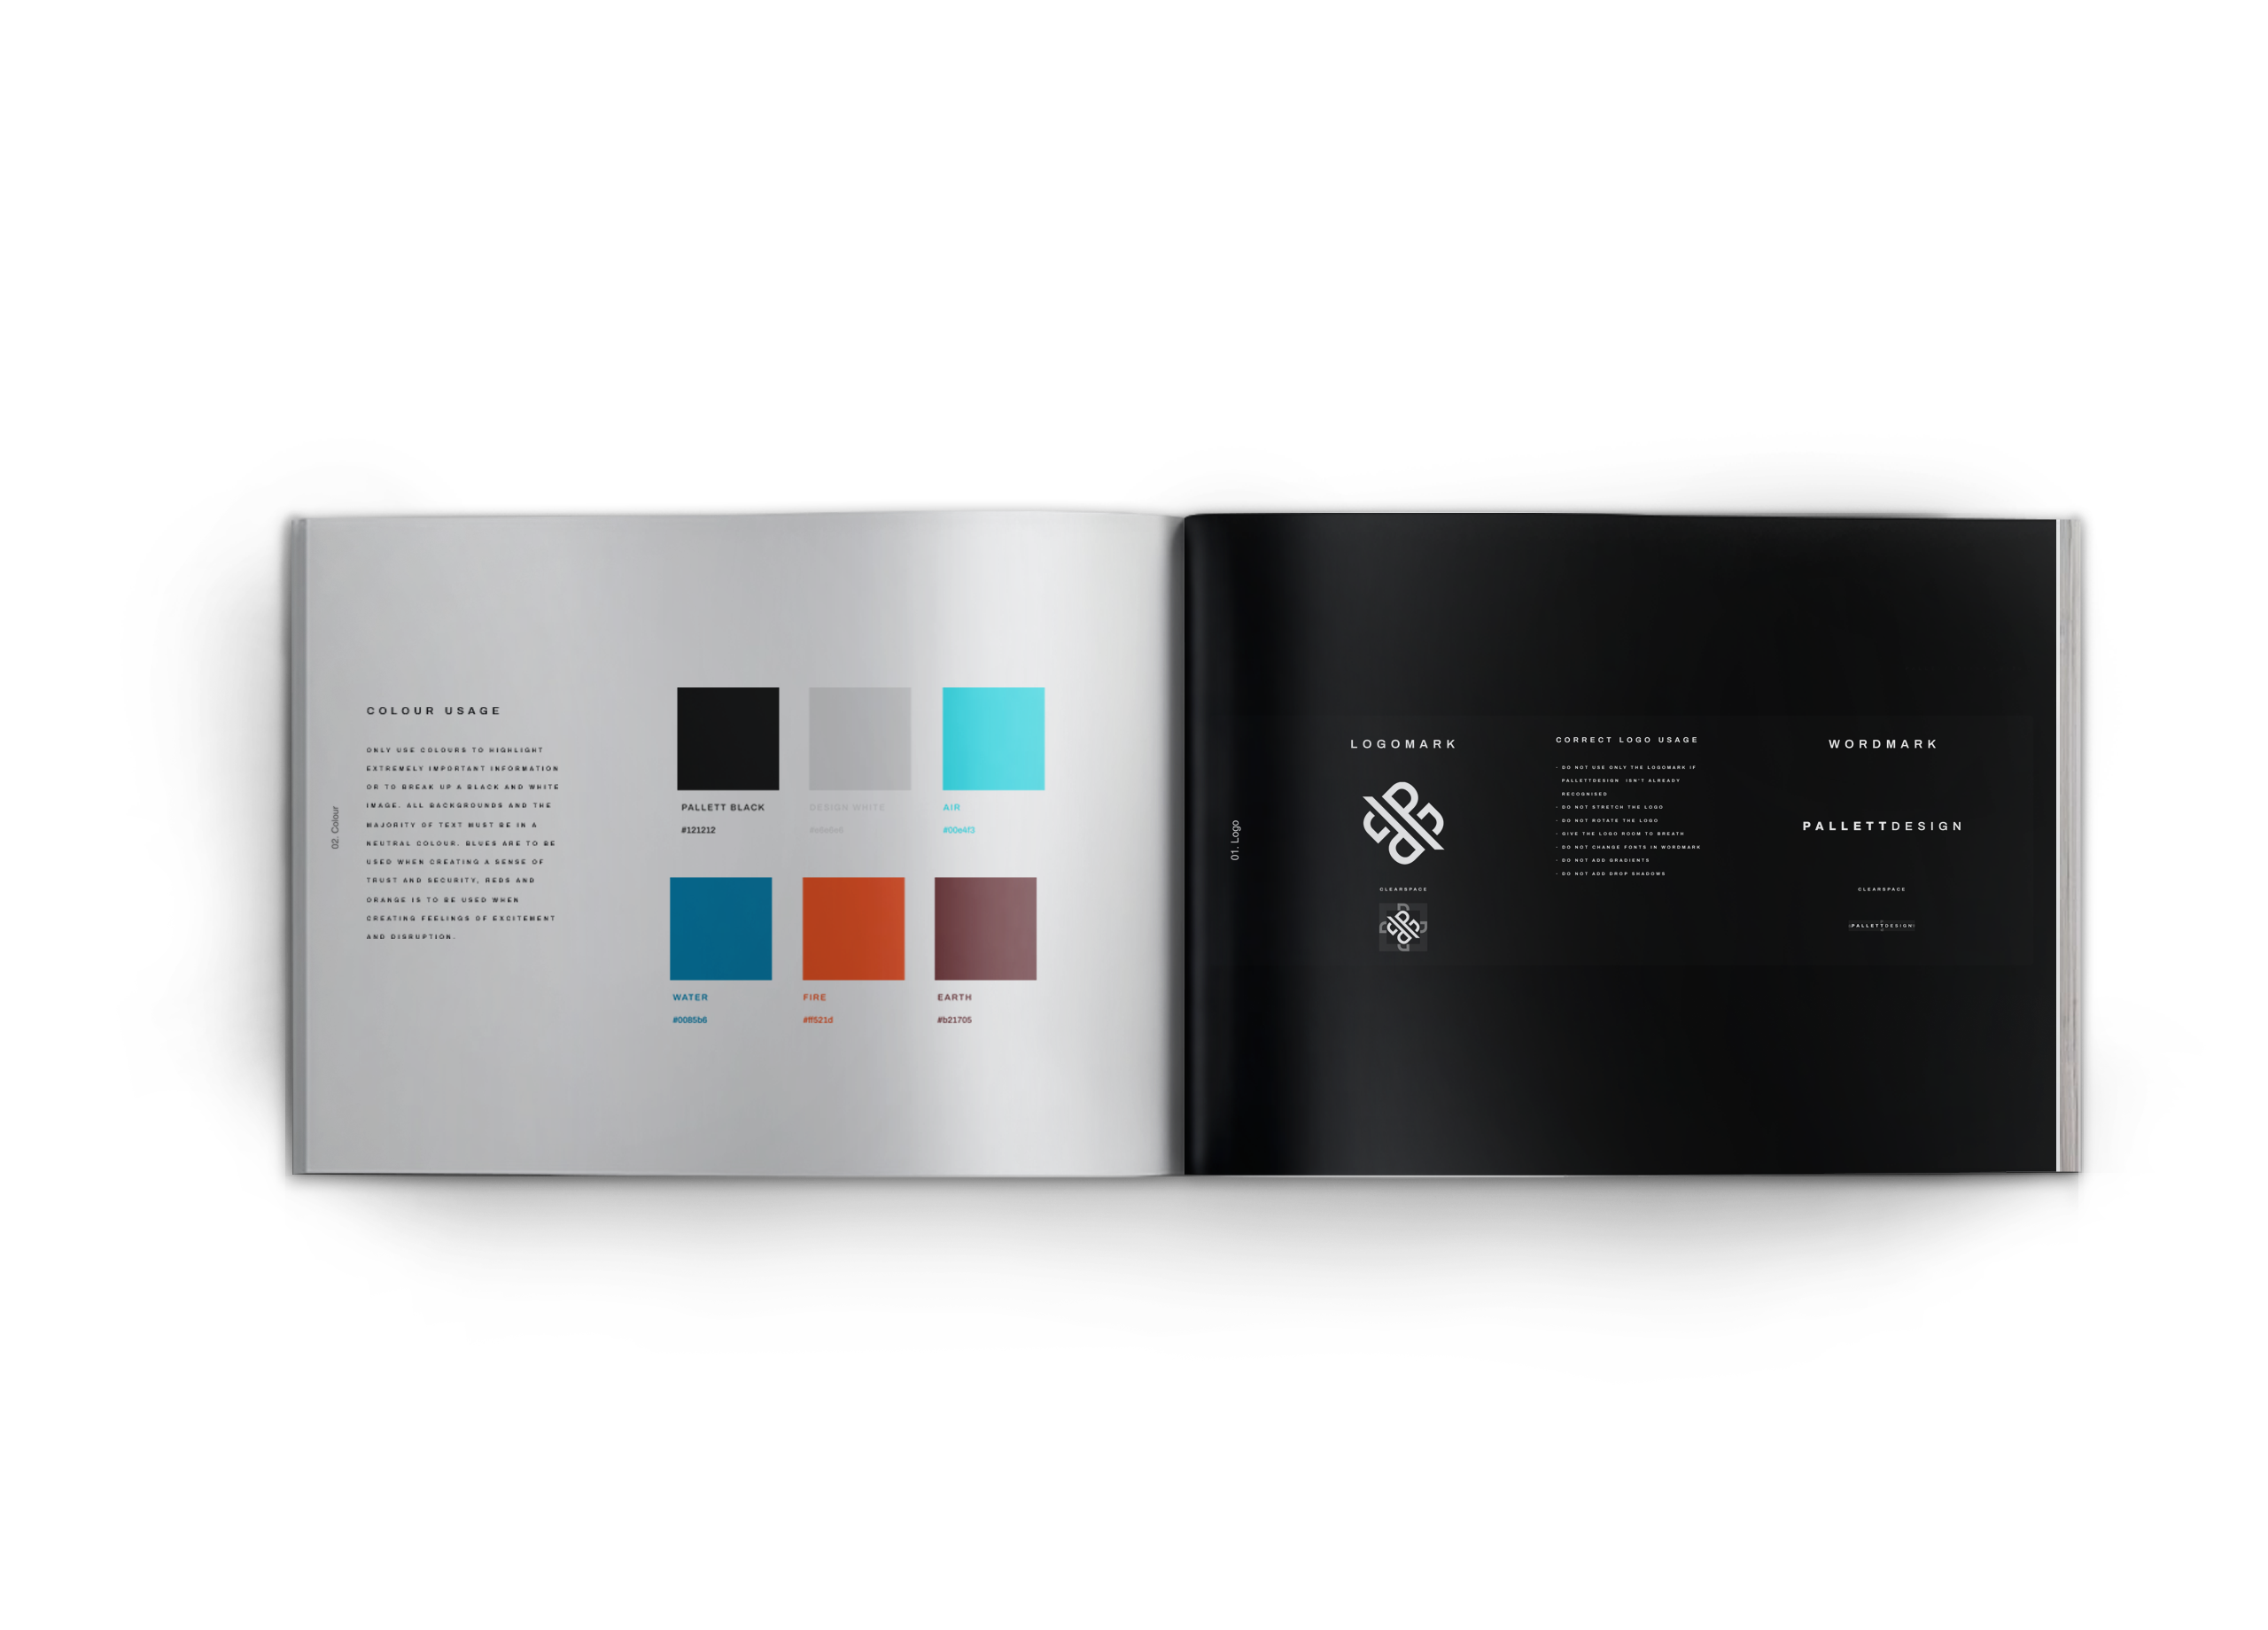 A booklet with a colour scheme and logo use guides on the pages